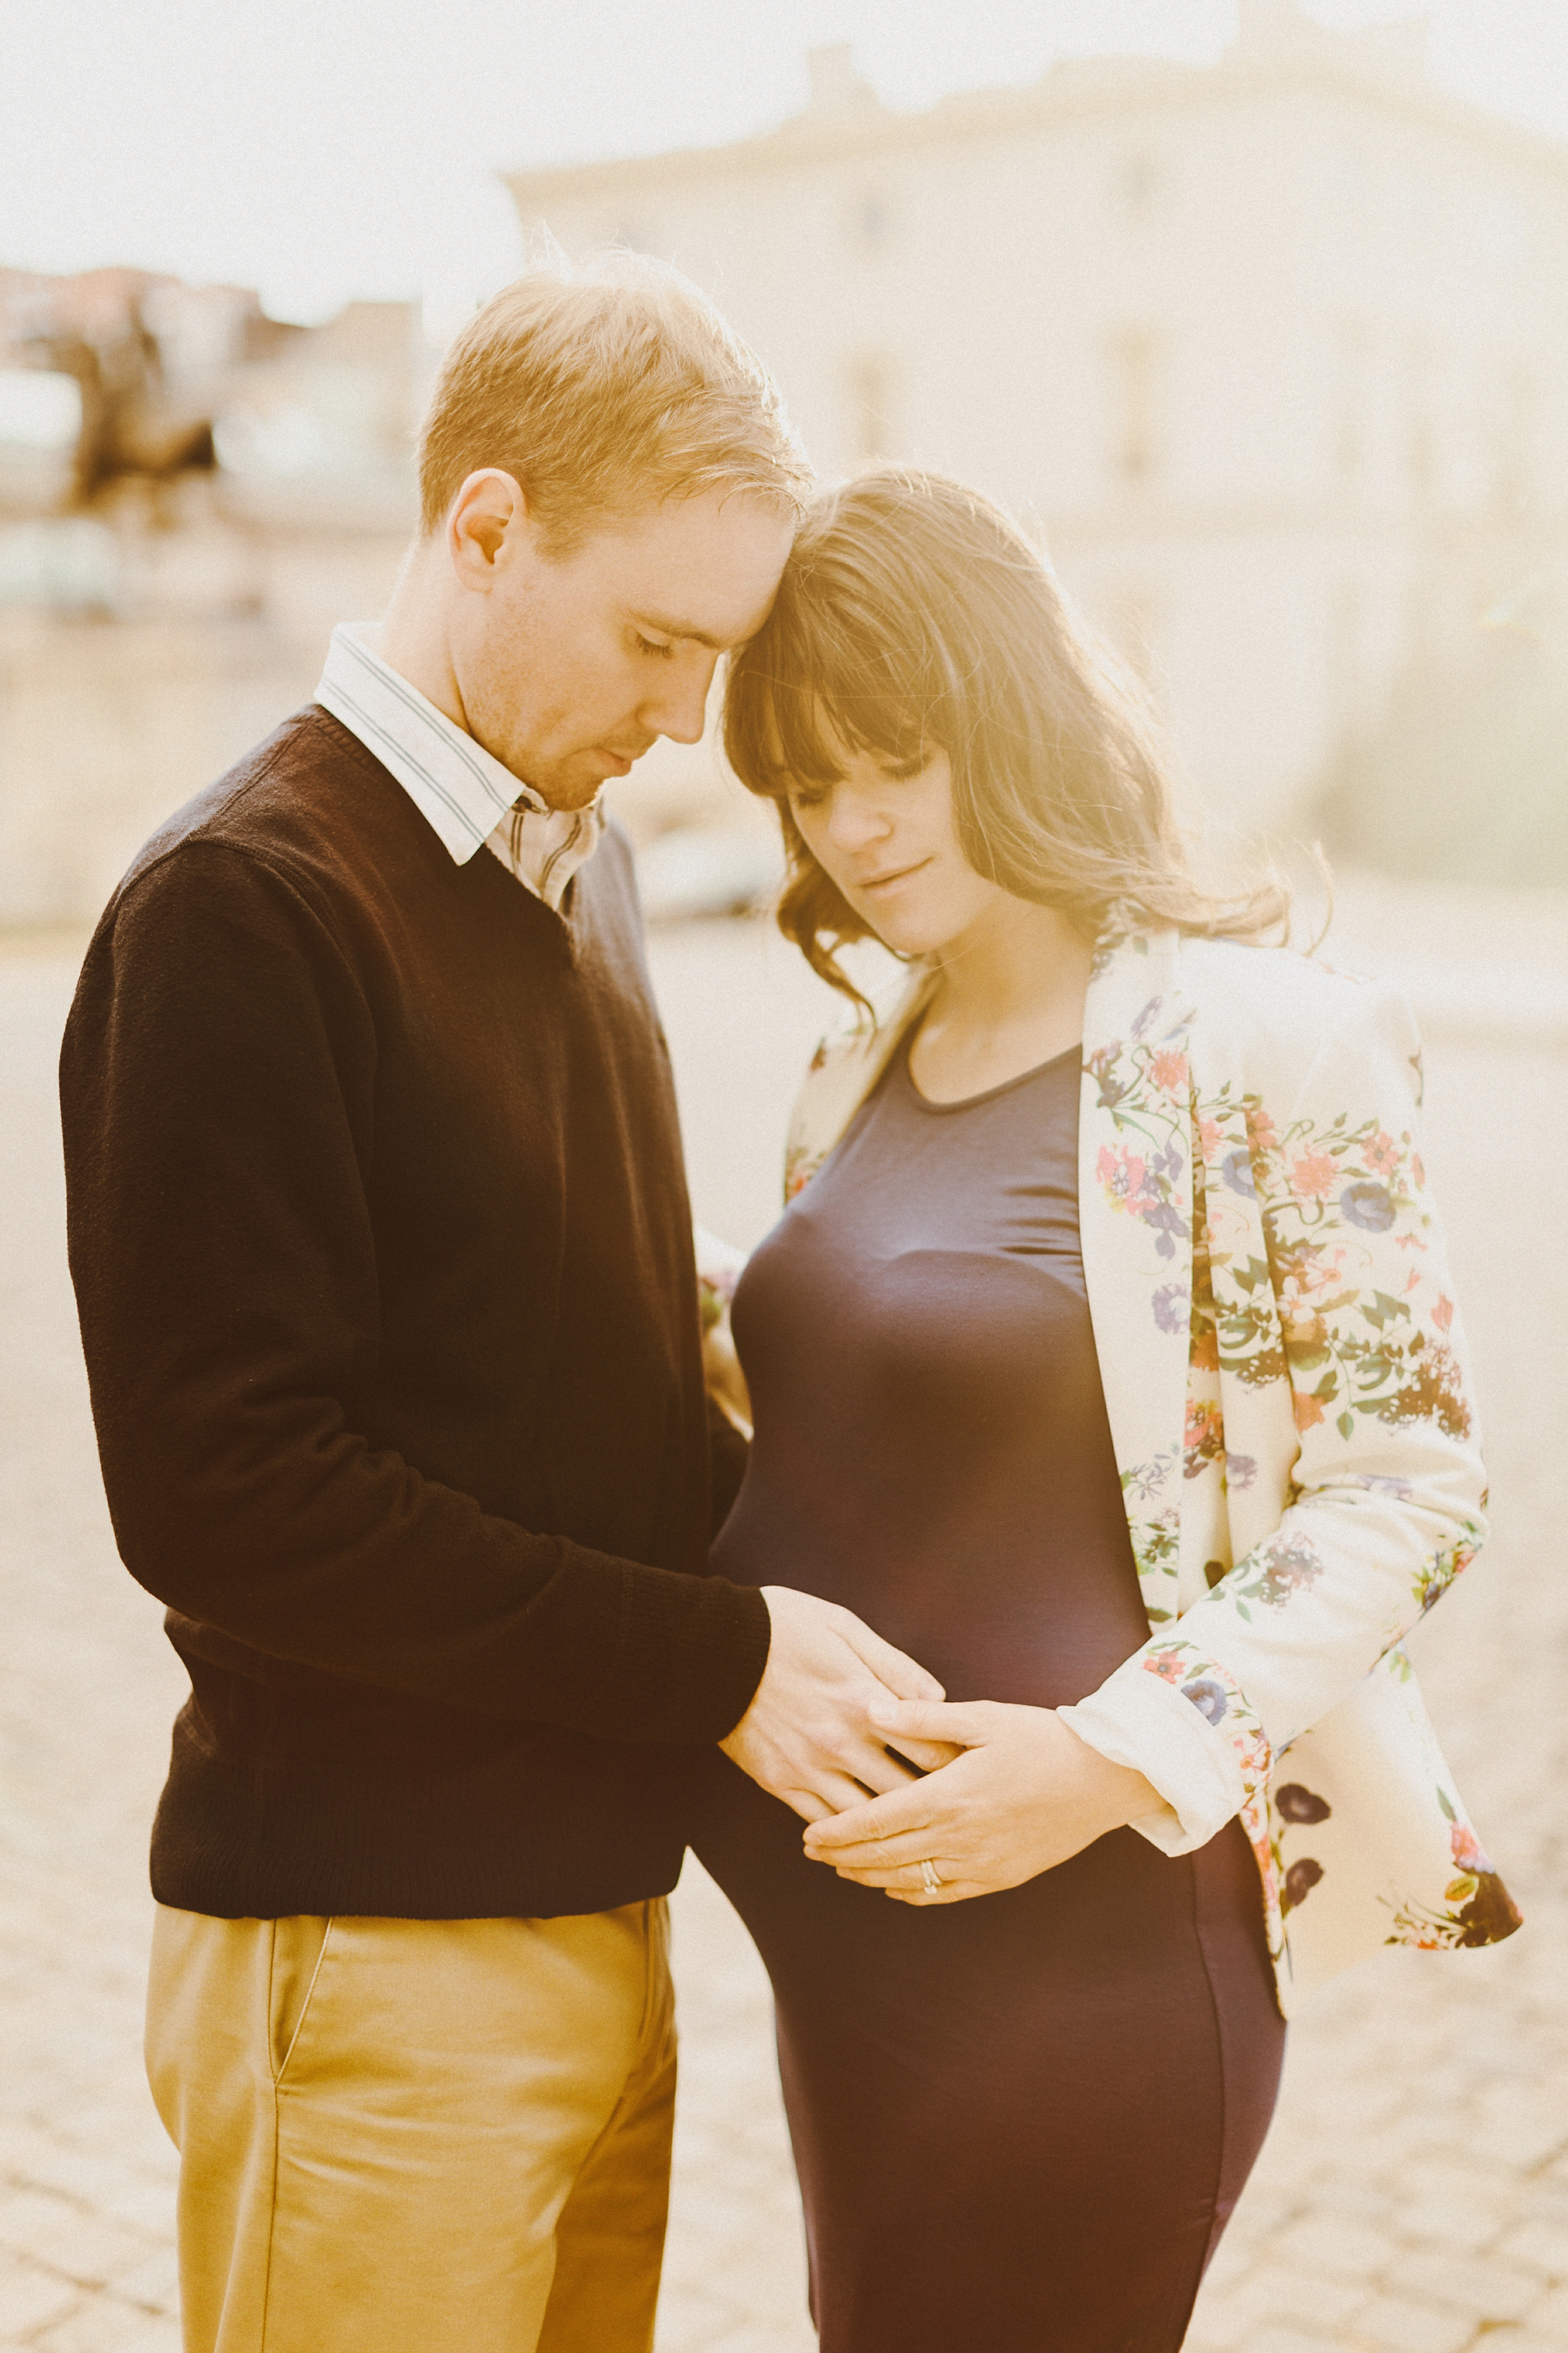 Baltimore_Maternity_Sunset_Portrait_Session_by_Maryland_Wedding_Photographer_Kate_Ann_Photography_photo_0876